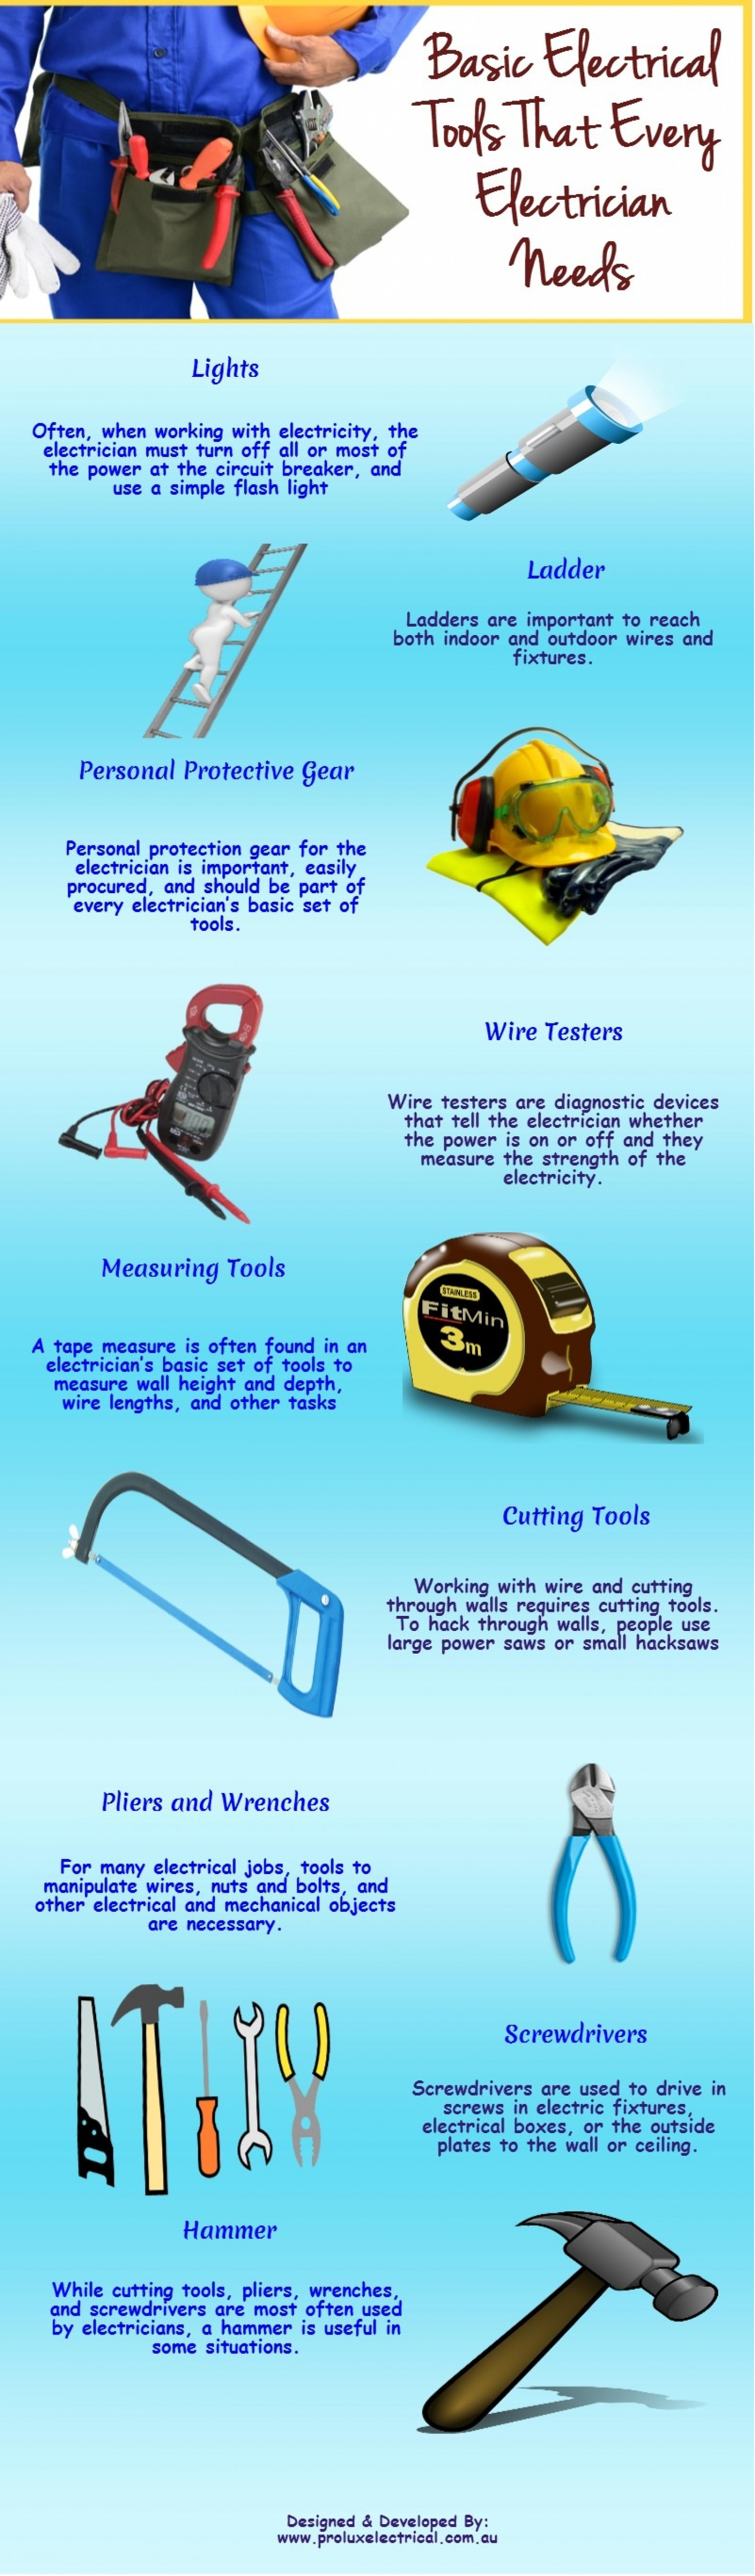 Basic Electrical Tools That Every Electrician Needs | Visual.ly